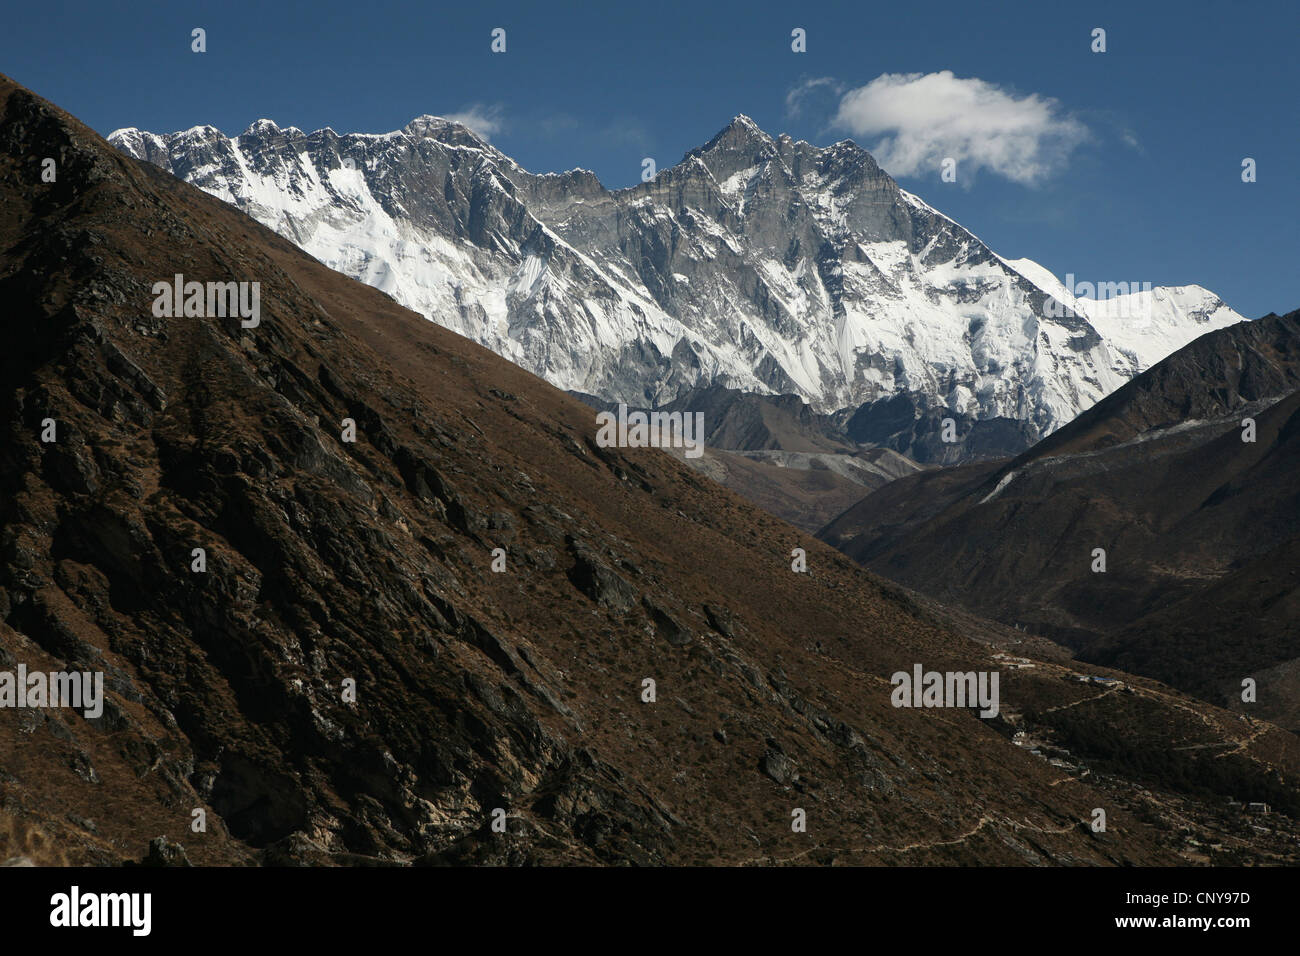 South face of Mount Lhotse (8,516 m) in Khumbu region in the Himalayas, Nepal. View from Pangboche village. - Stock Image